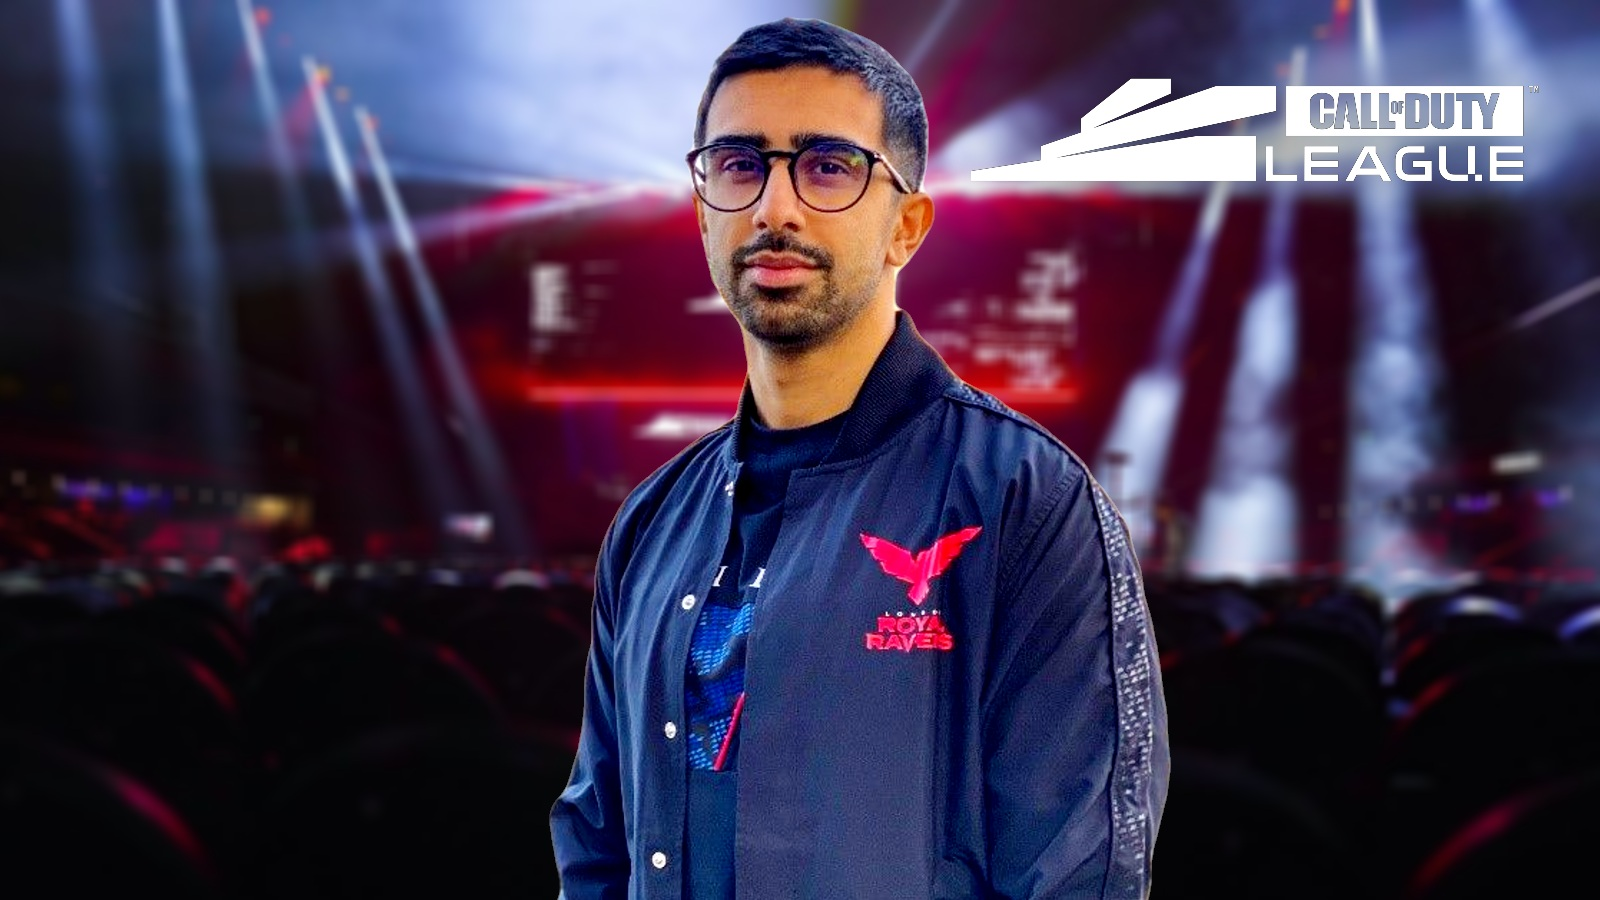 Vikkstar London Royal Ravens co-owner